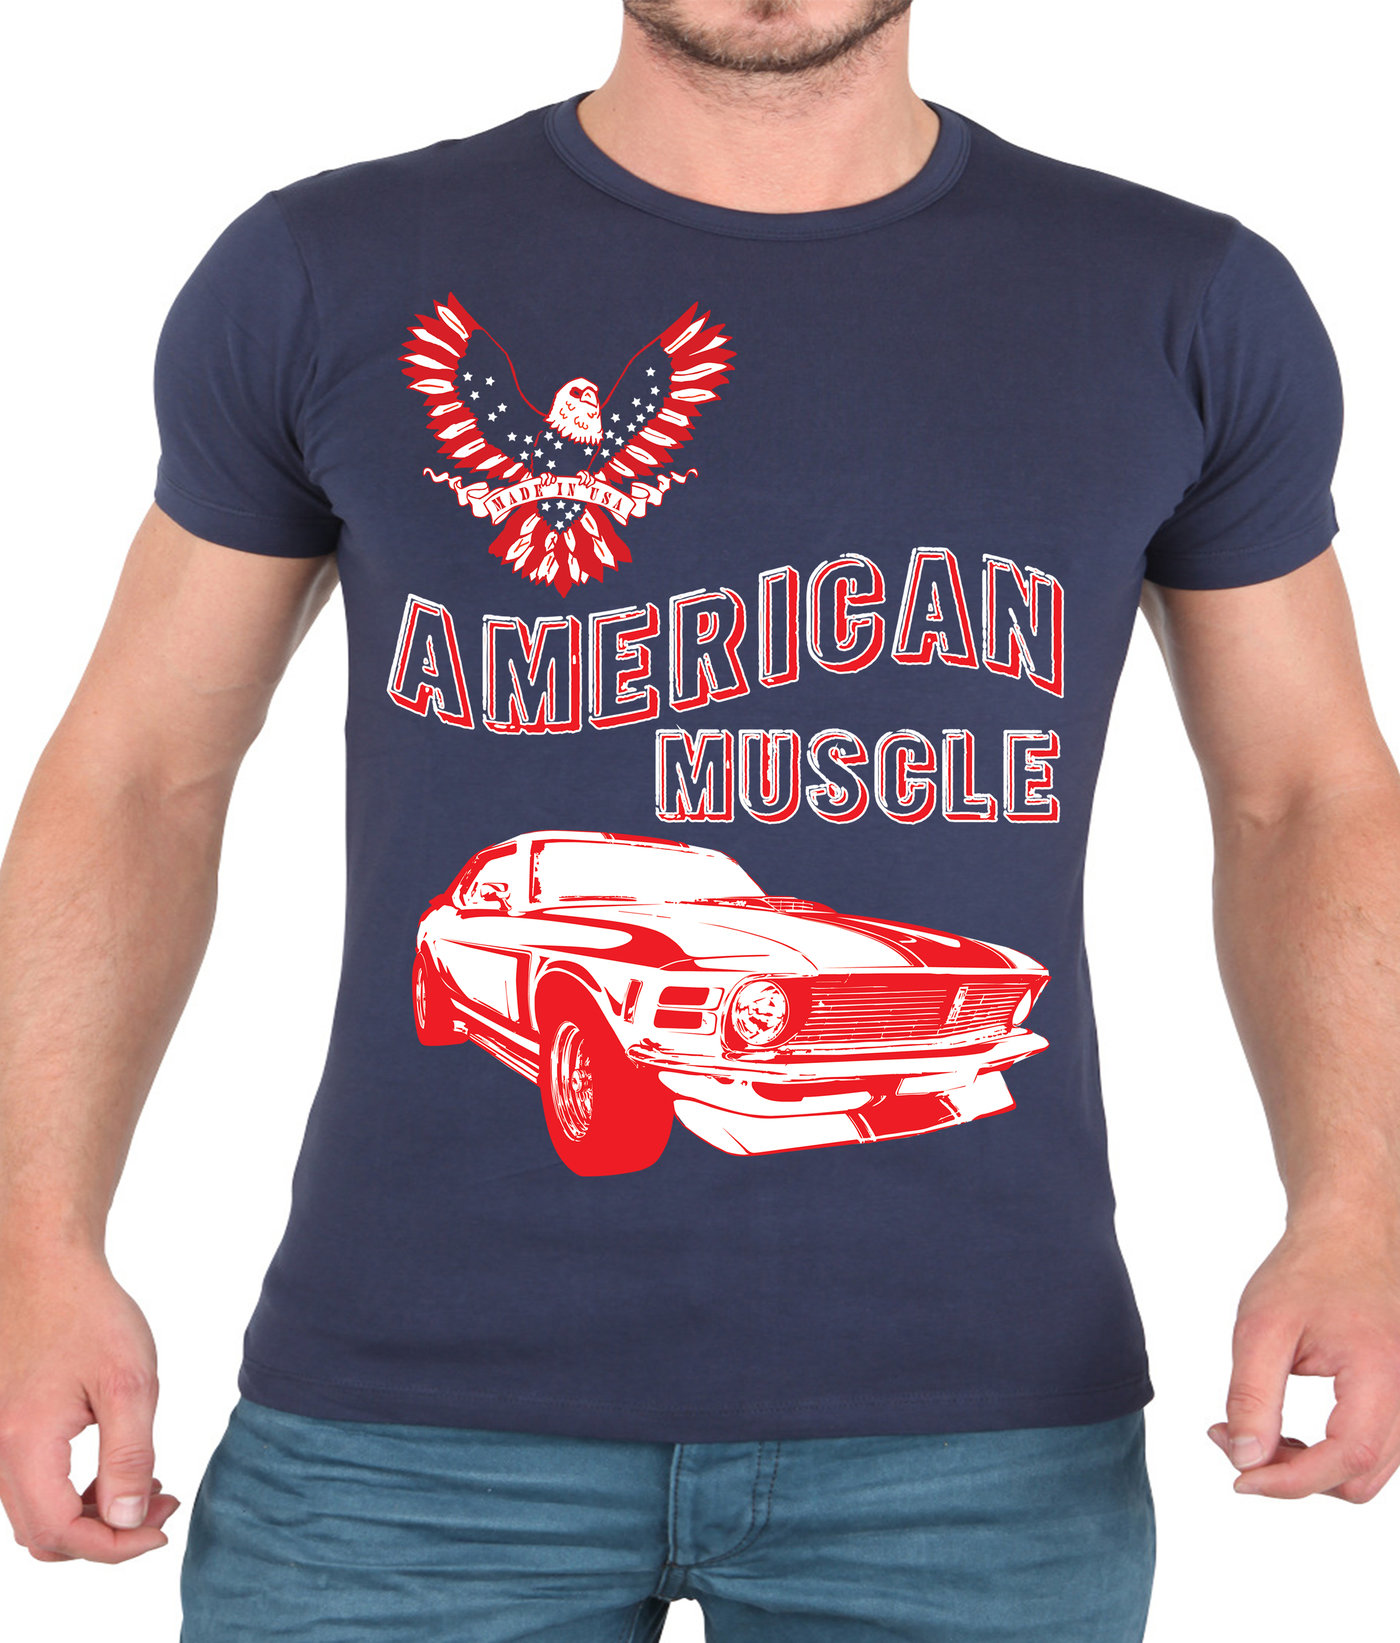 16be35ab1bd28b American Muscle Design Variations by MICHAEL Nguyen at Coroflot.com